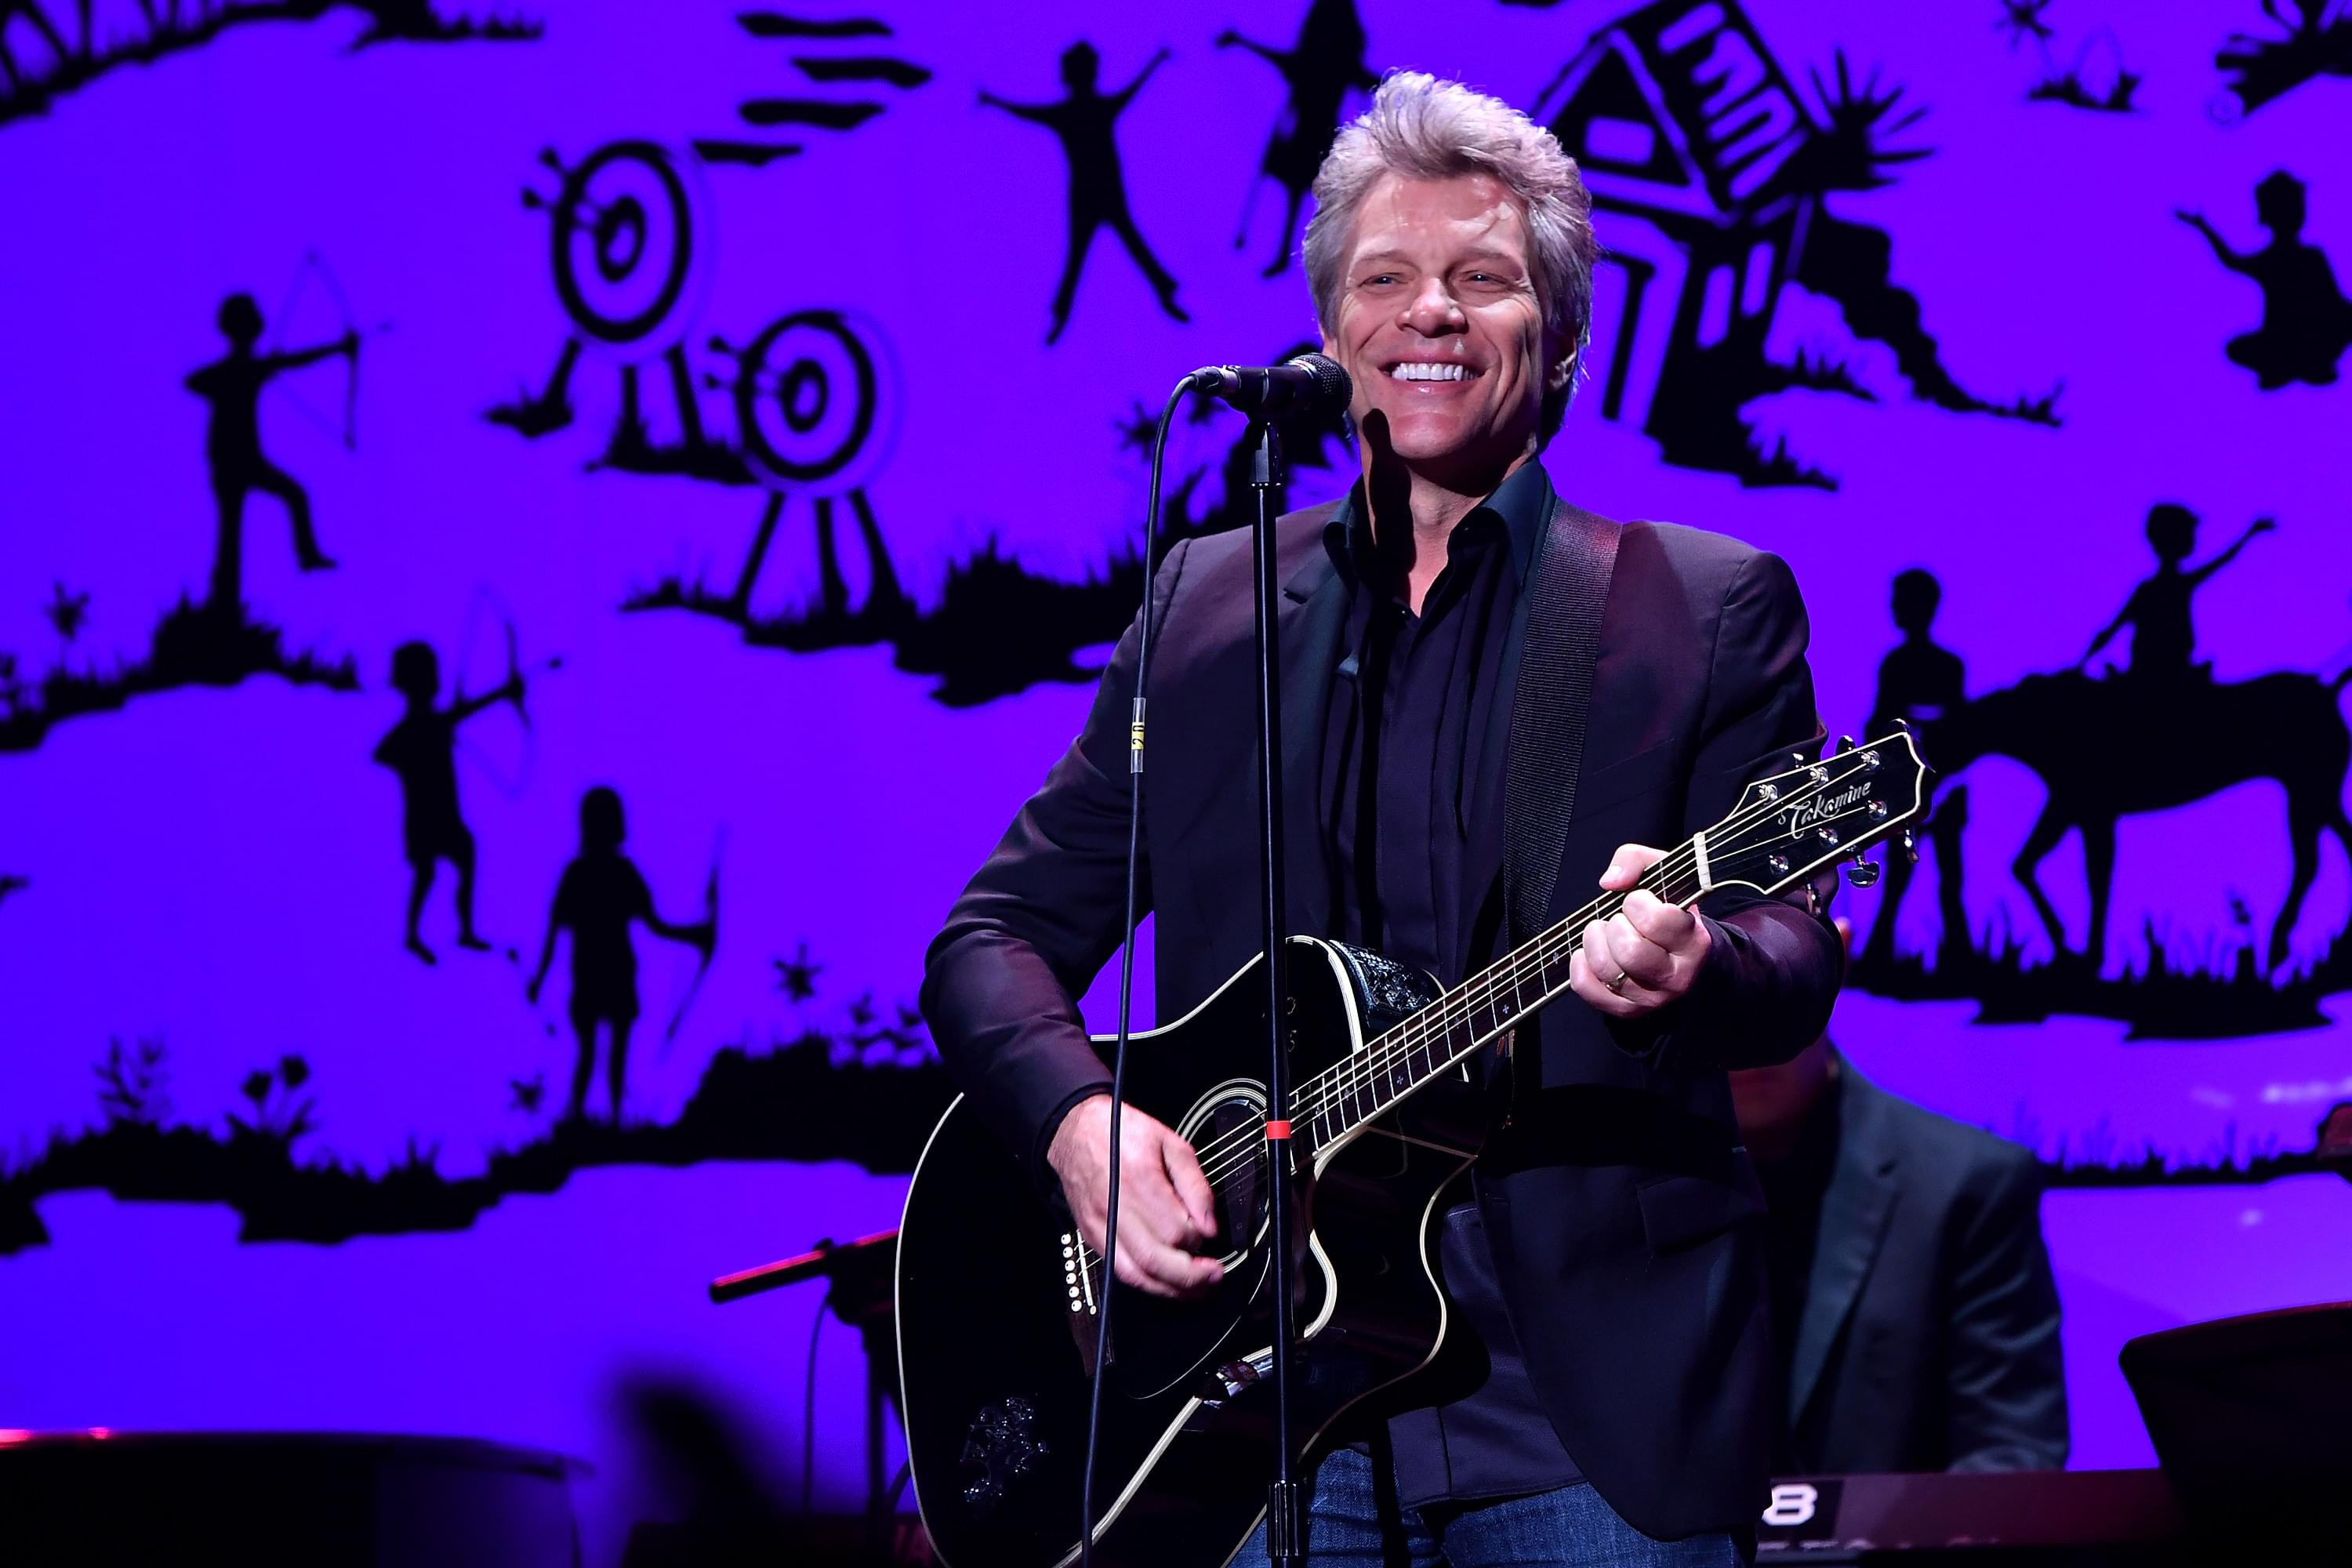 Bon Jovi Announces New Album, Releases New Song [LISTEN]